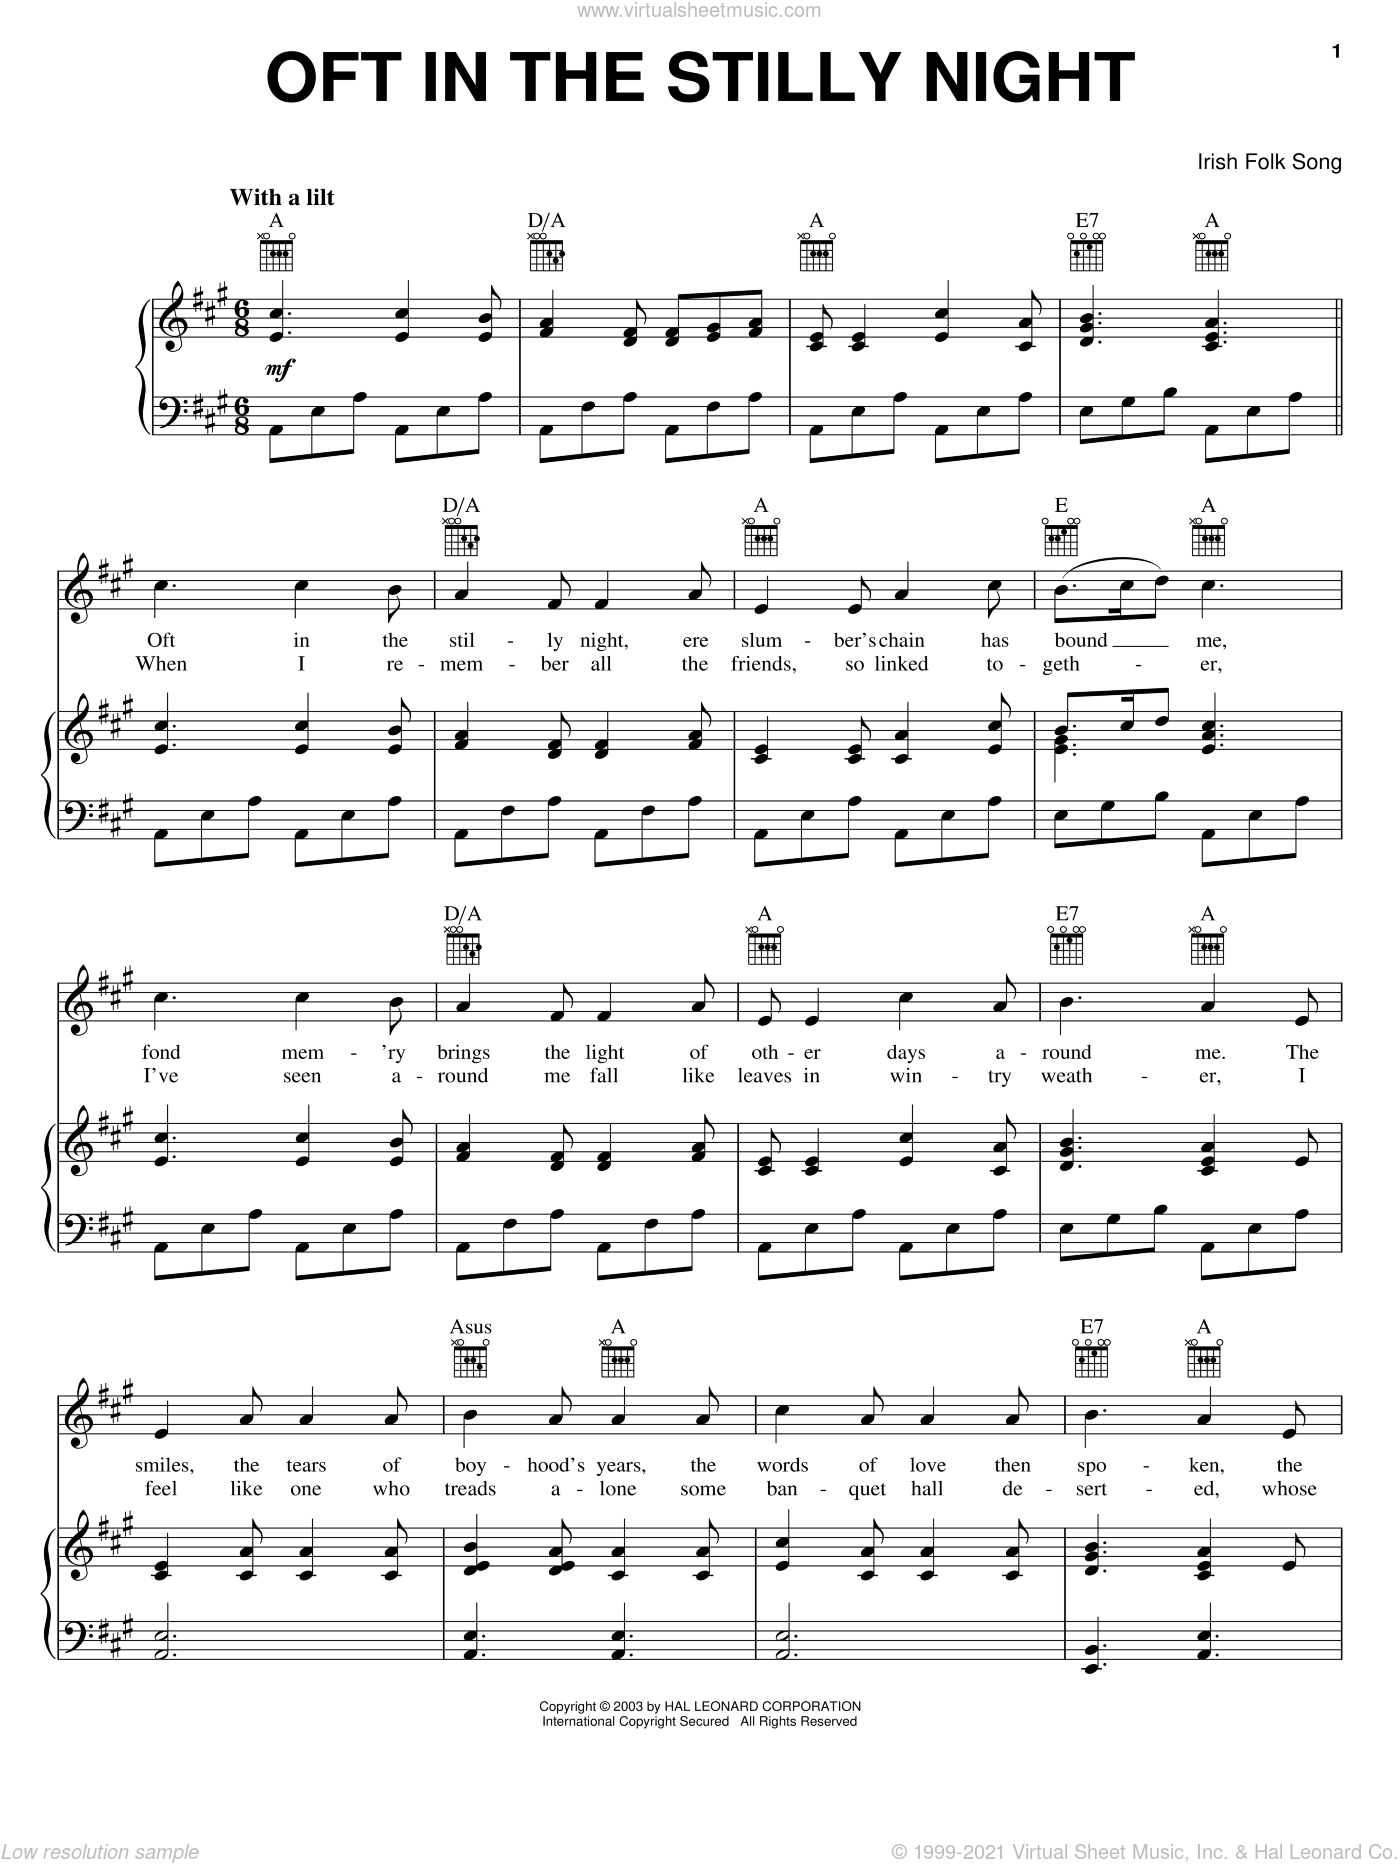 Oft In The Stilly Night sheet music for voice, piano or guitar, intermediate skill level